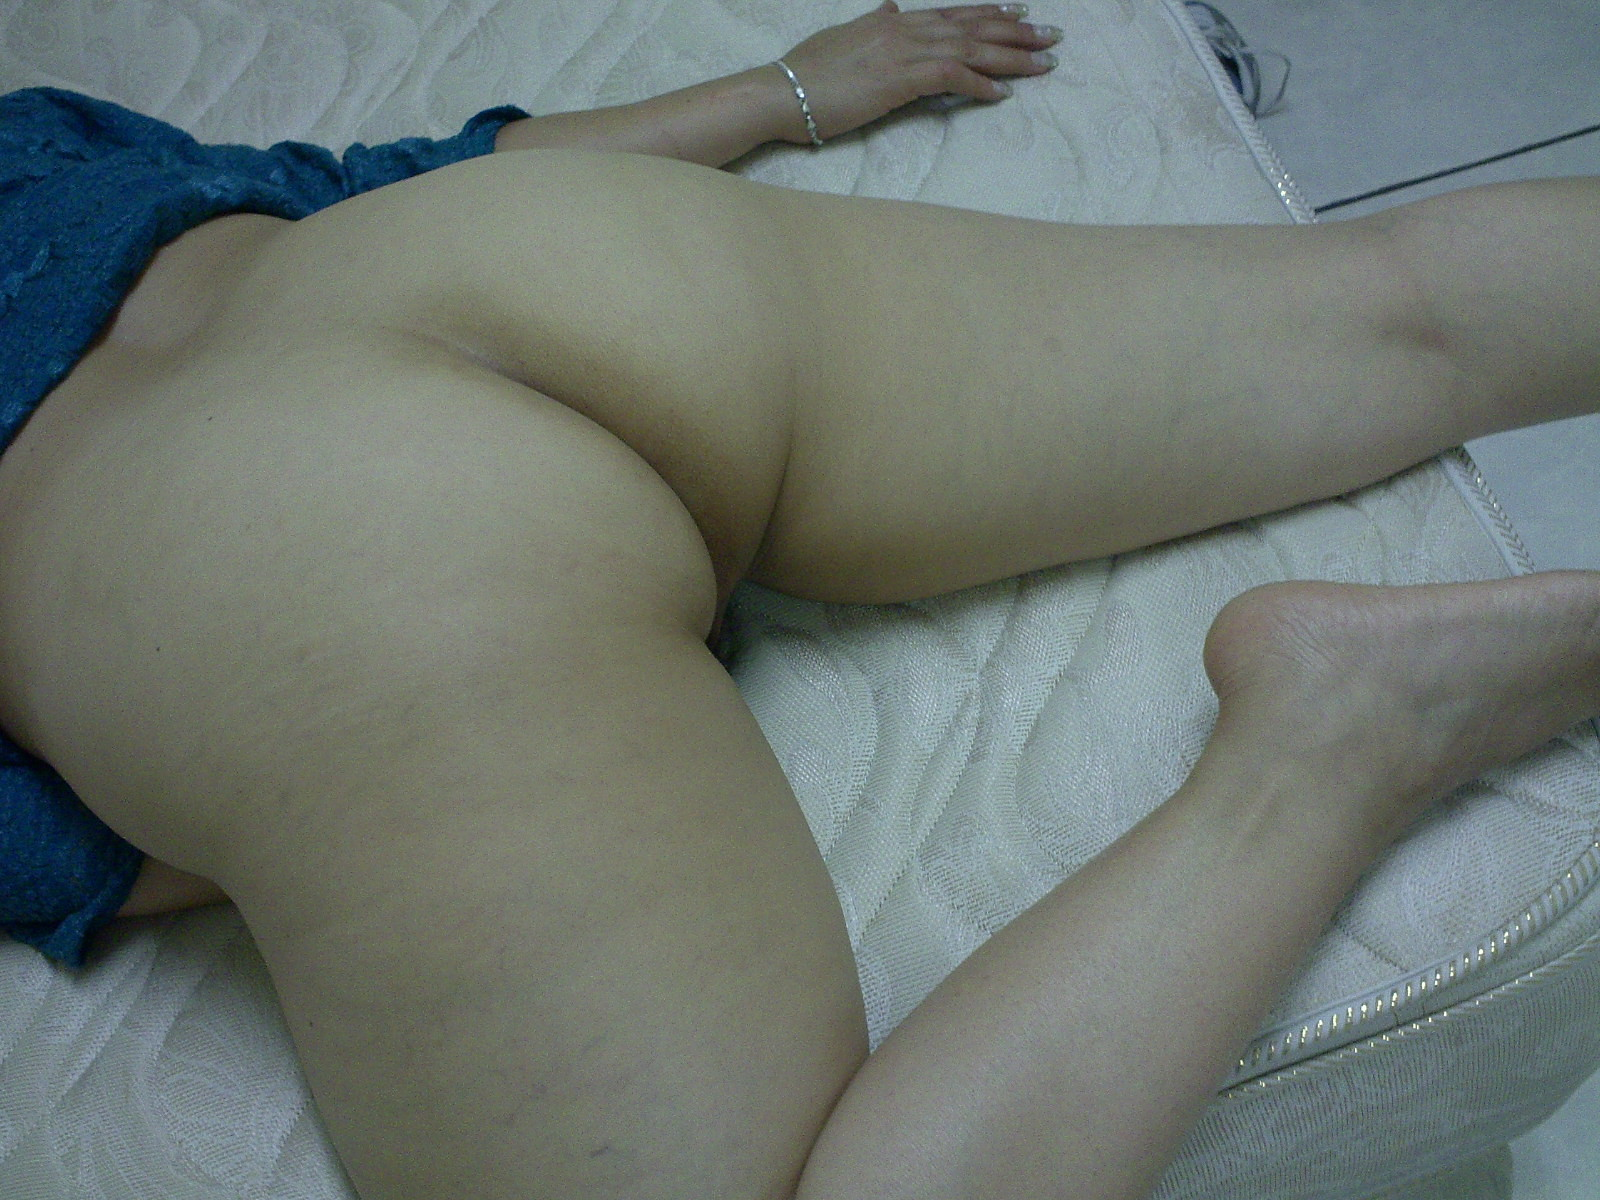 hairy pussy in the theater